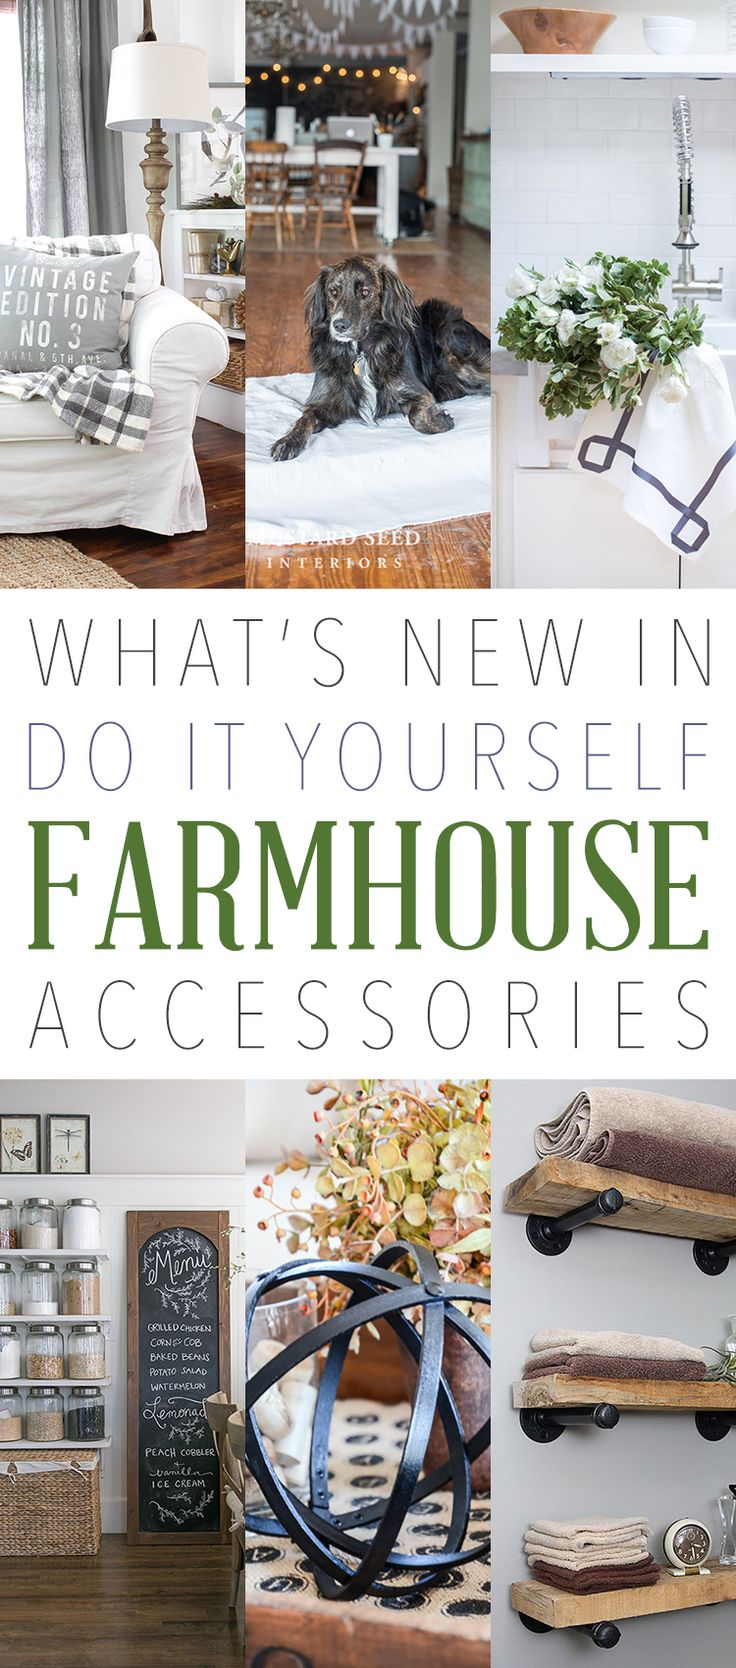 What's NEW in DIY Farmhouse Accessories - The Cottage Market